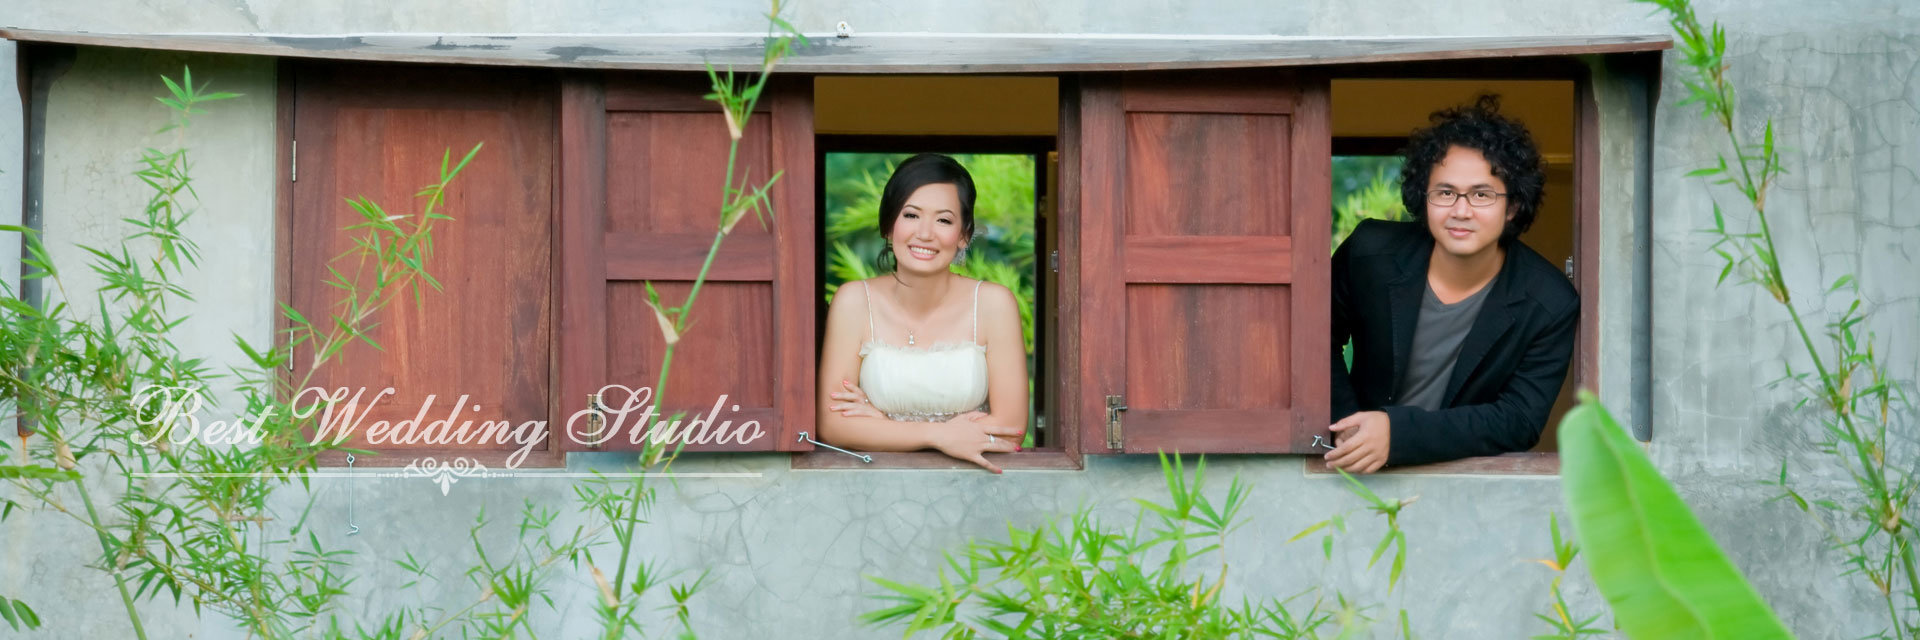 bestweddingstudio03